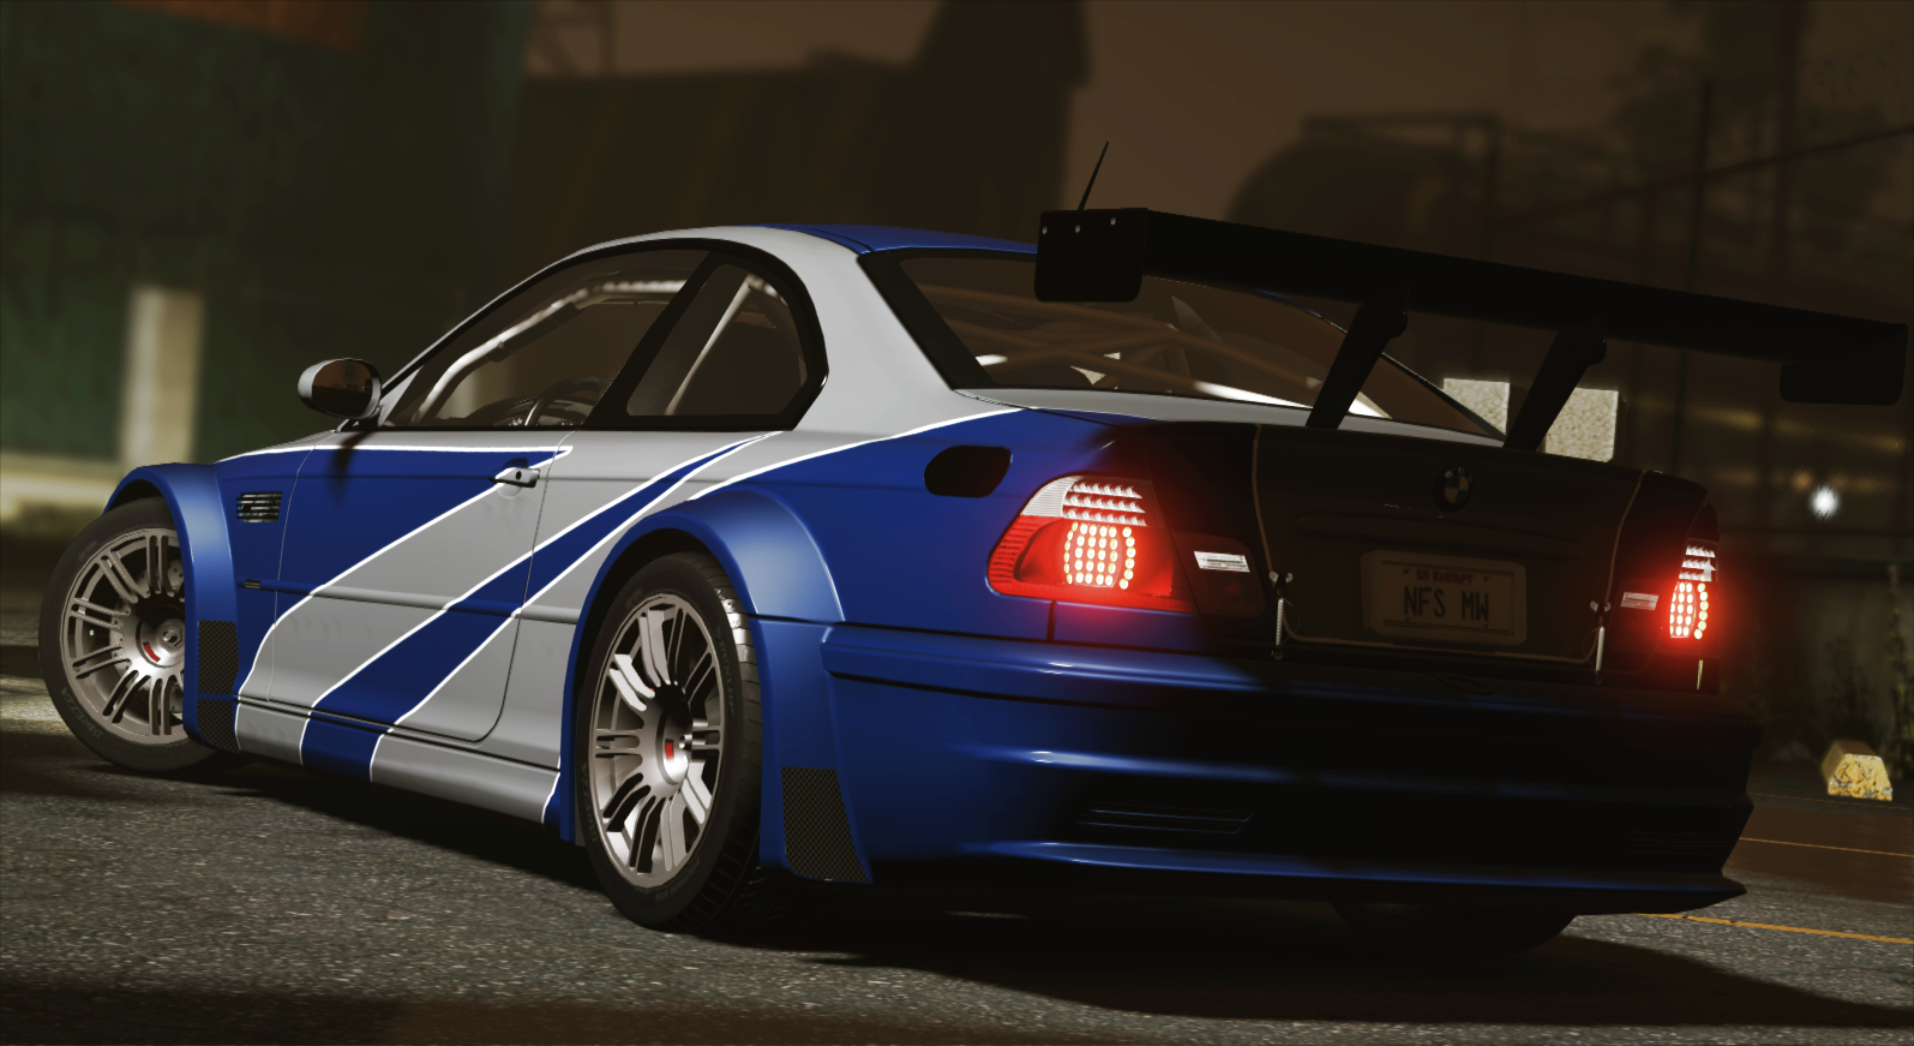 Bmw M3 Gtr E46 Nfs Mw 4k Livery Add On Gta5 Mods Com